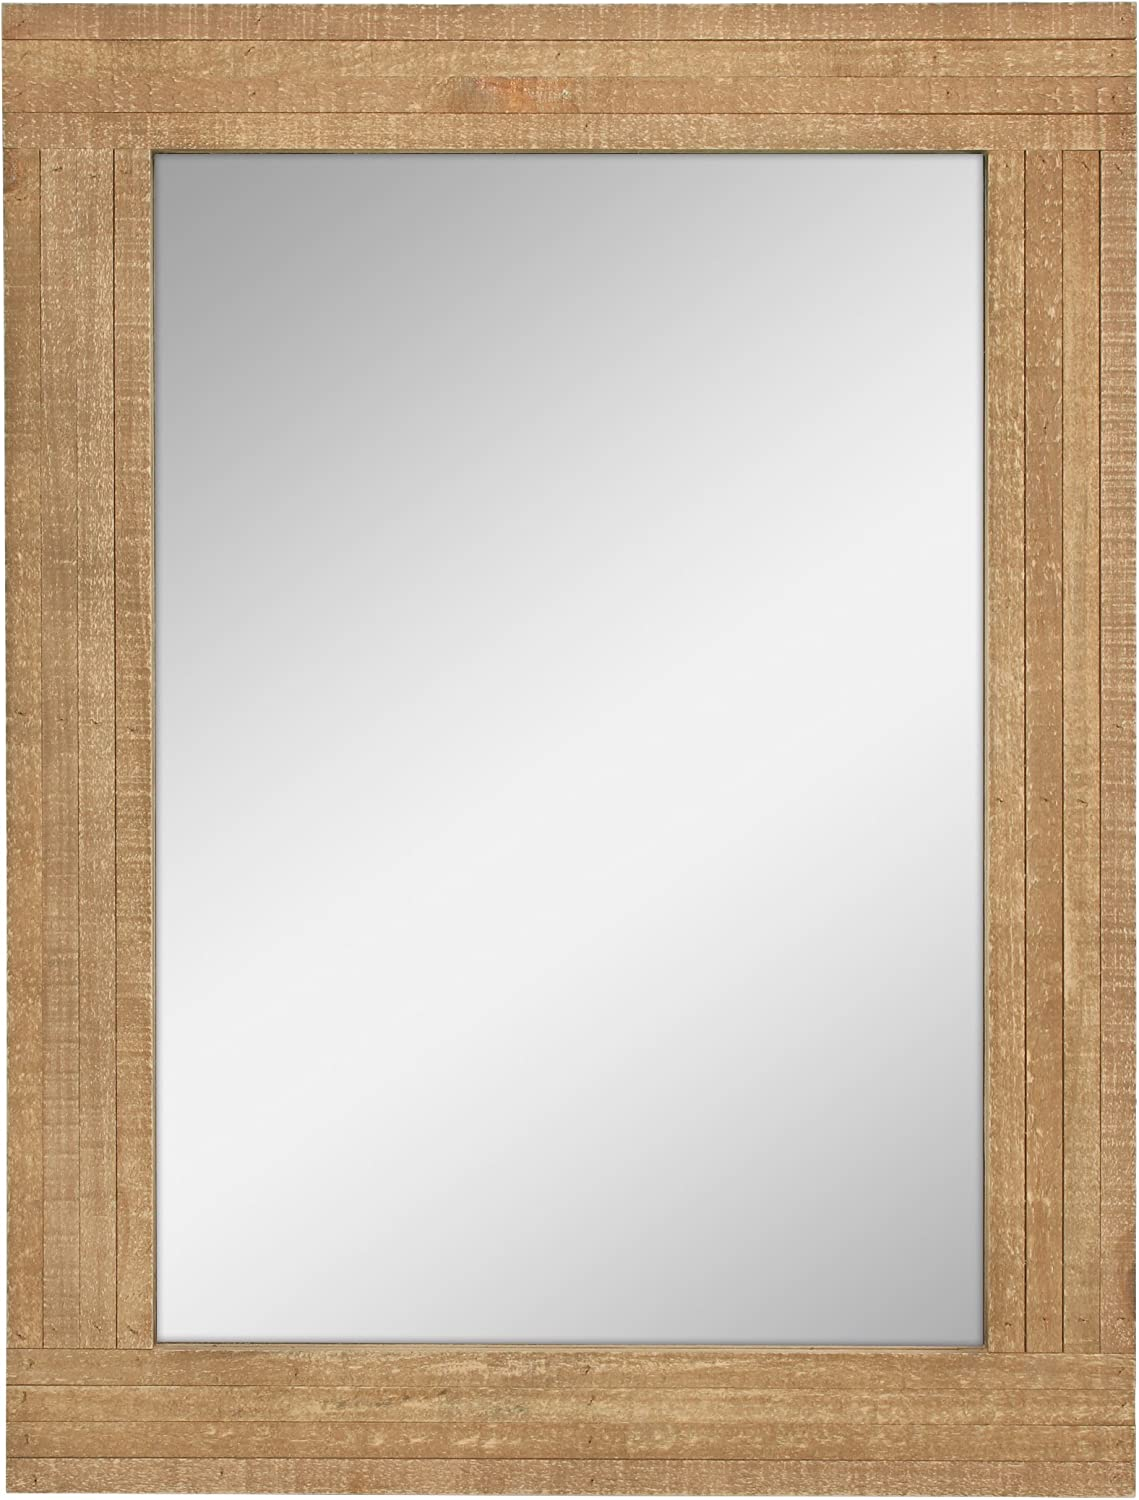 Stonebriar Rustic Rectangular Natural Wood Frame Hanging Wall Mirror, Farmhouse Decor for the Living Room, Bedroom, Bathroom, Office, and Entryway